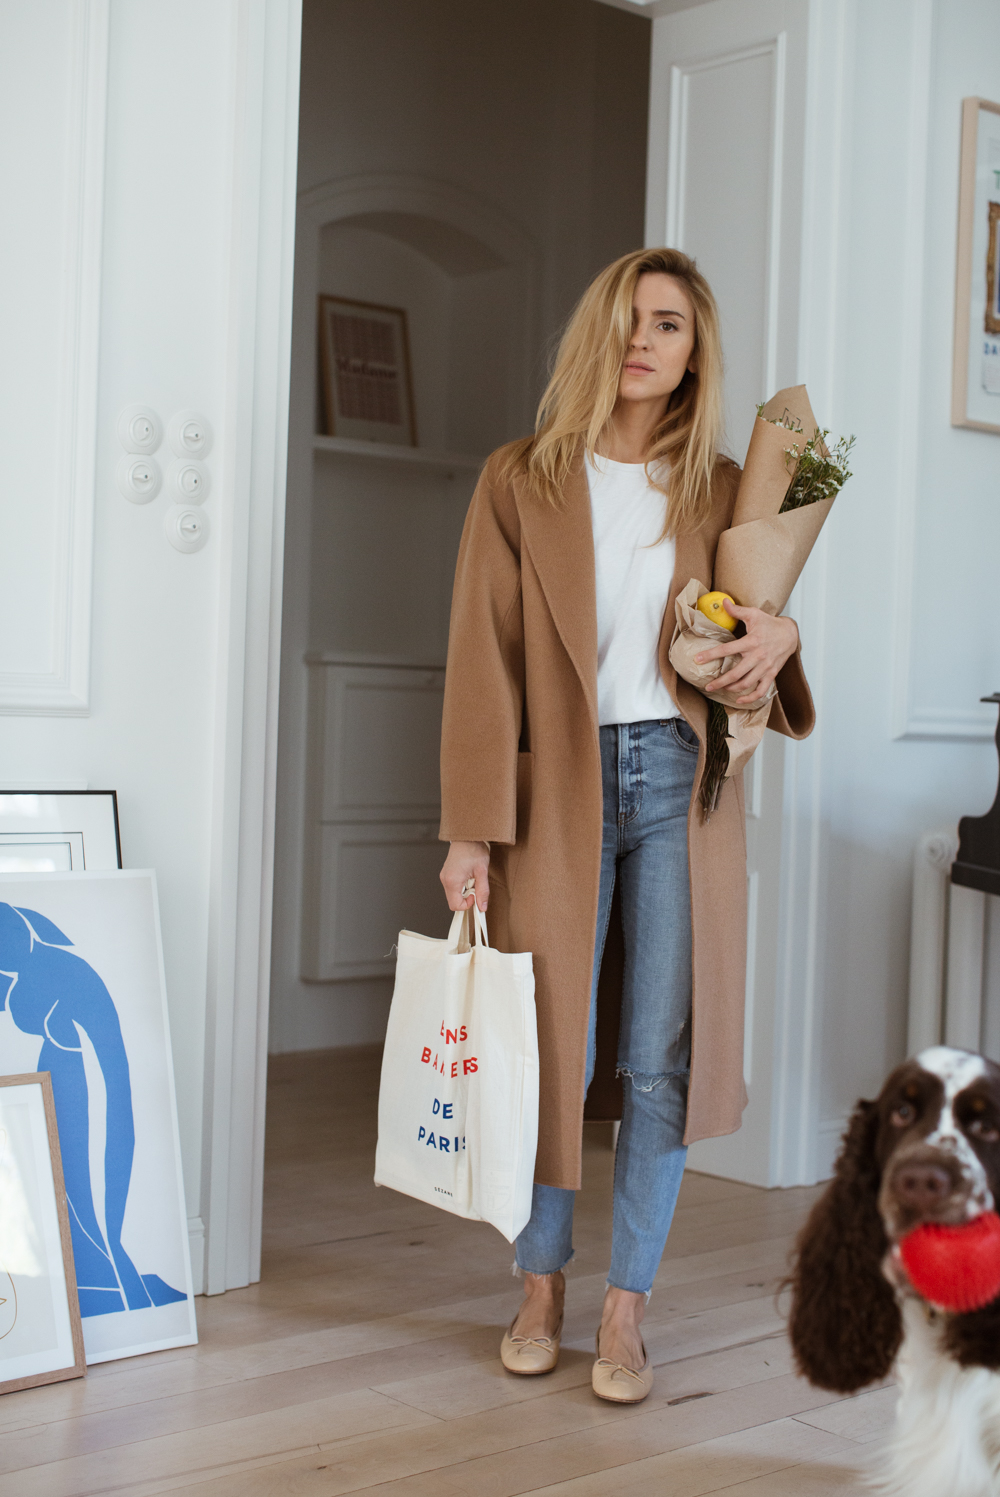 Fall and Winter Weekend Outfit Idea for Running Errands — Katarzyna Tusk in aCamel Coat, Raw-Hem Jeans, and Beige Ballet Flats